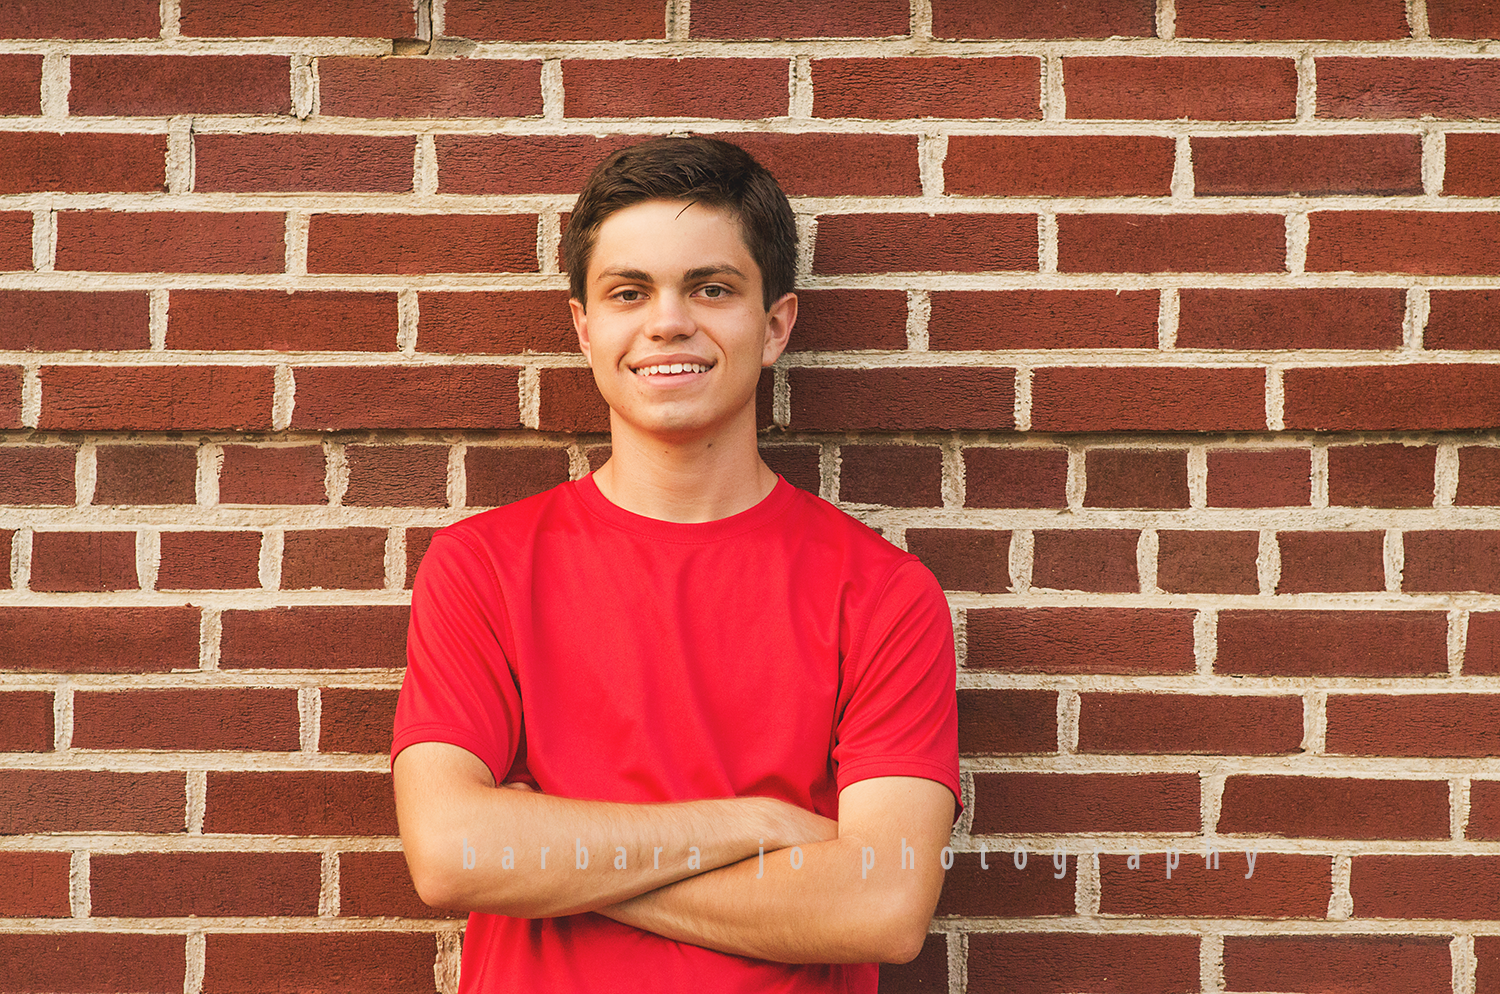 bjp-senior-portraits-guy-photographer-dover-nphs-ohio-drum-band-rock-quaker-tyler7.png